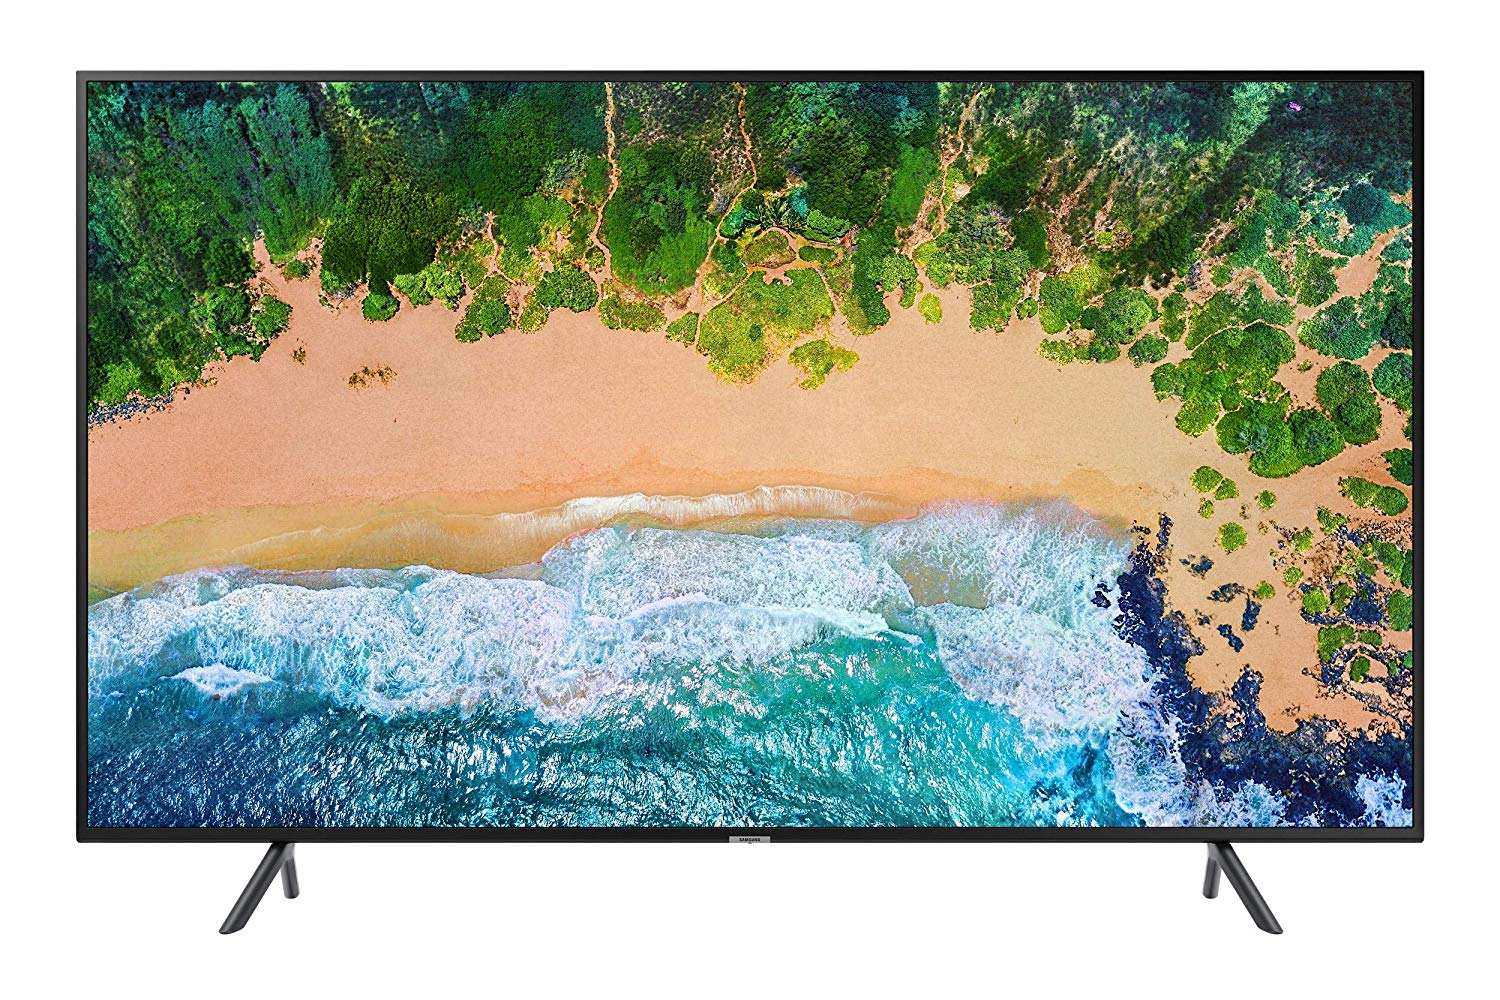 Samsung 138 Cm 55 Inches 7 Series UA55NU7100K 4K LED Smart TV Reviews And Best Buy Price In India